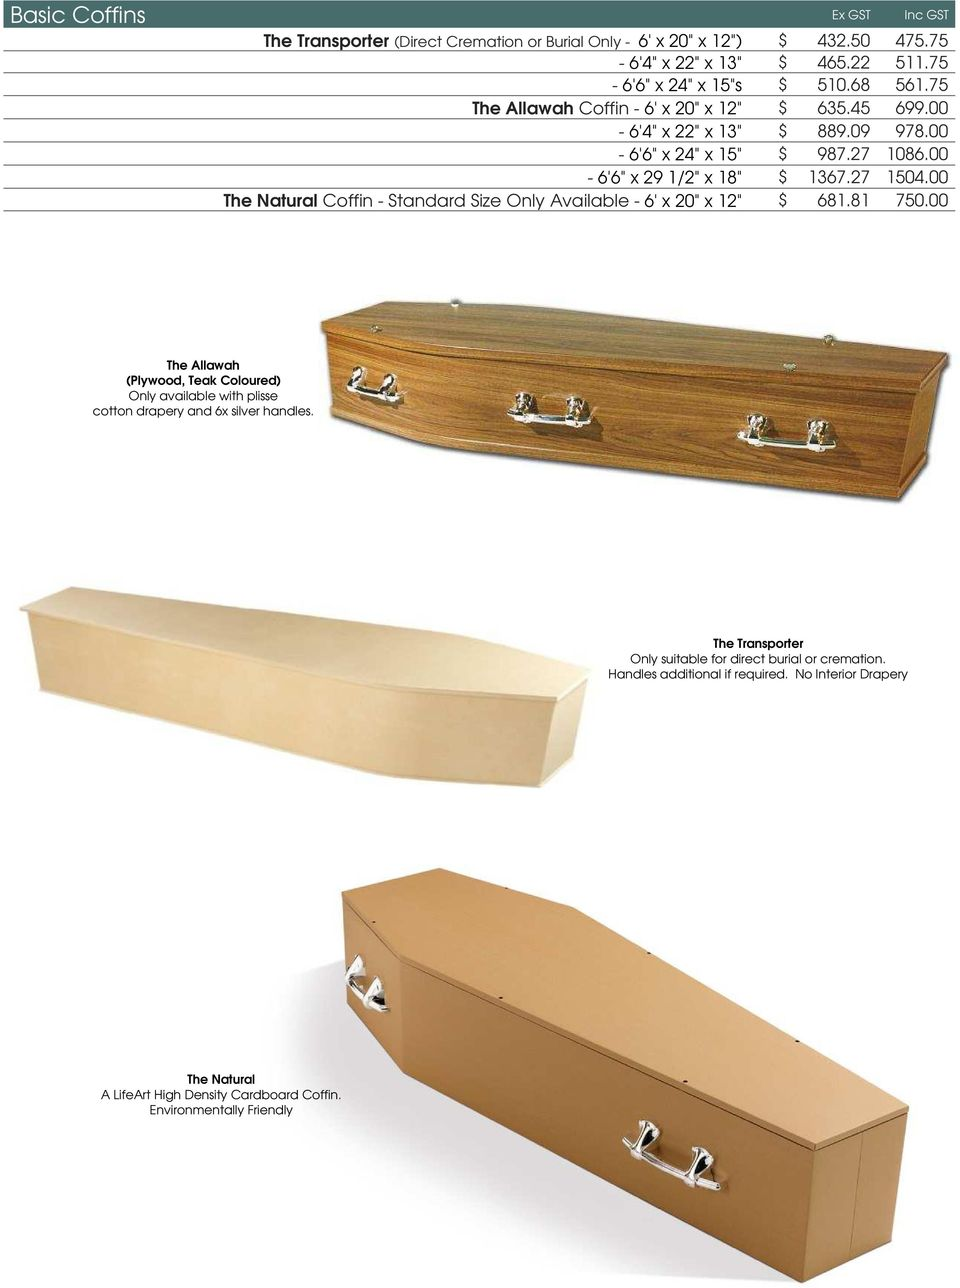 "00 The Berri Standard Coffin - 6'6"" x 24"" x 15"" $ 987.27 1086.00-6'6"" x 29 1/2"" x 18"" $ 1367.27 1504.00 The Natural Coffin - Standard Size Only Available - 6' x 20"" x 12"" $ 681.81 750."